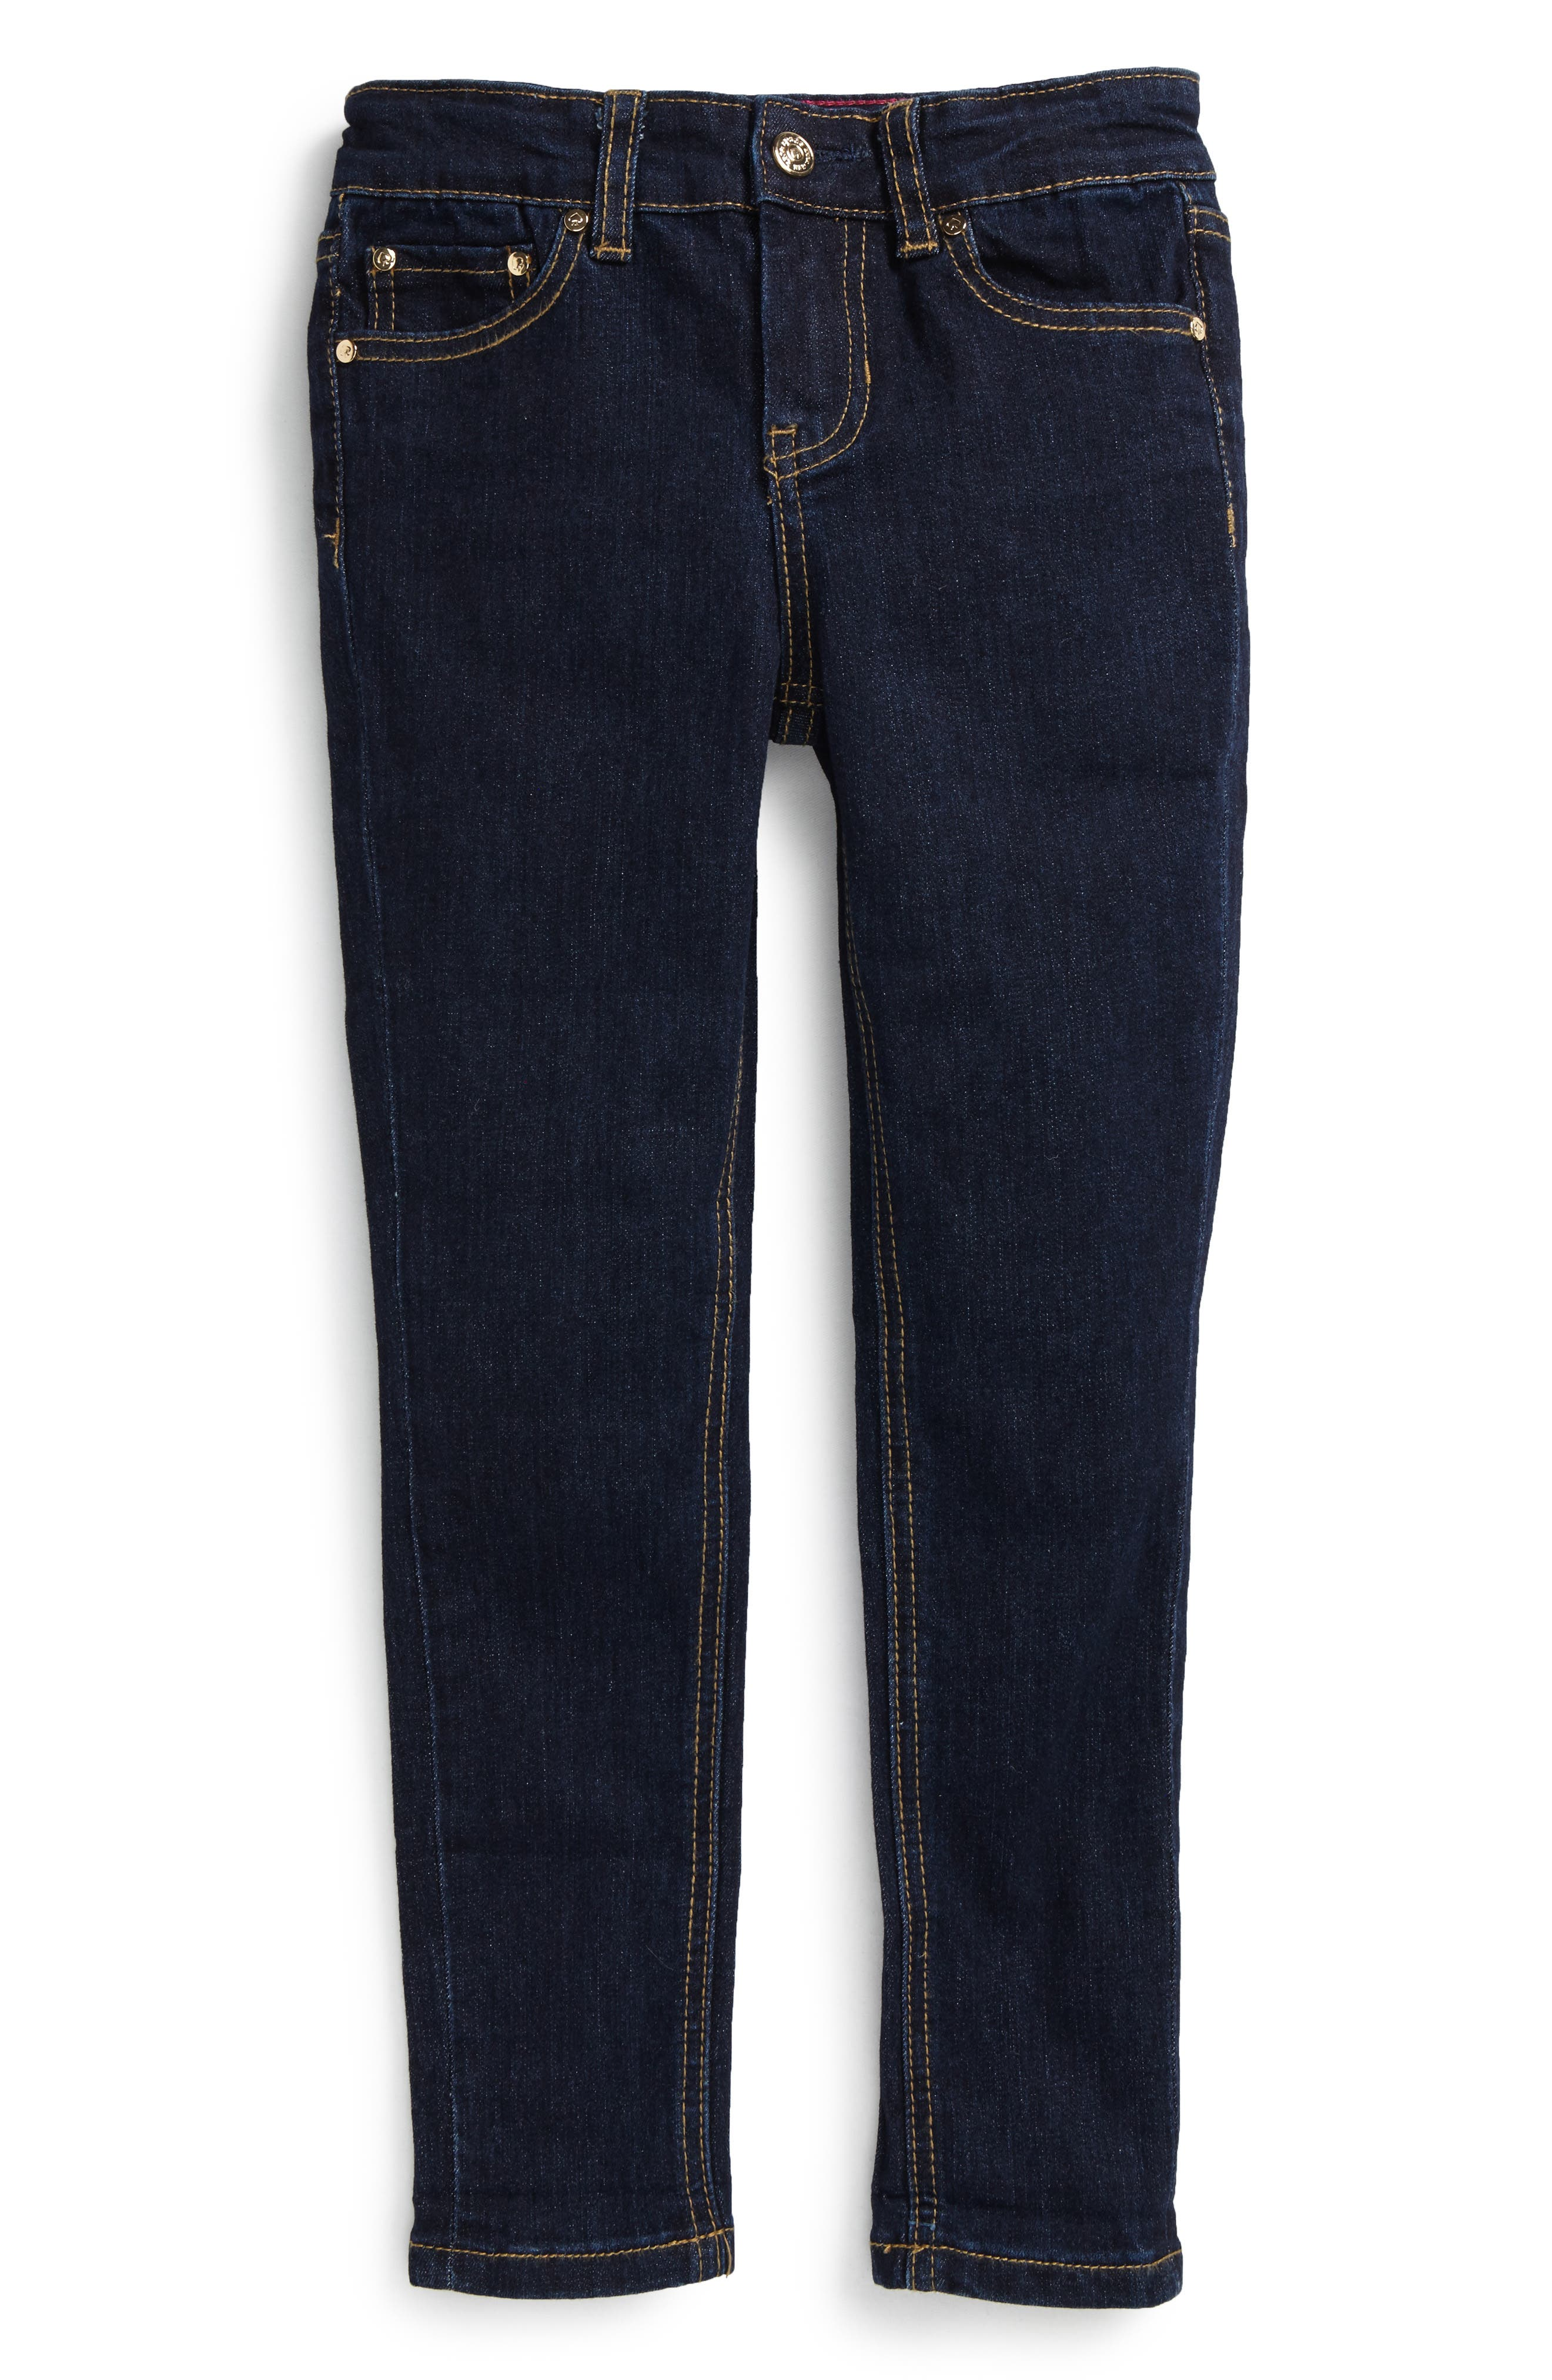 Main Image - kate spade new york skinny stretch jeans (Toddler Girls & Little Girls)